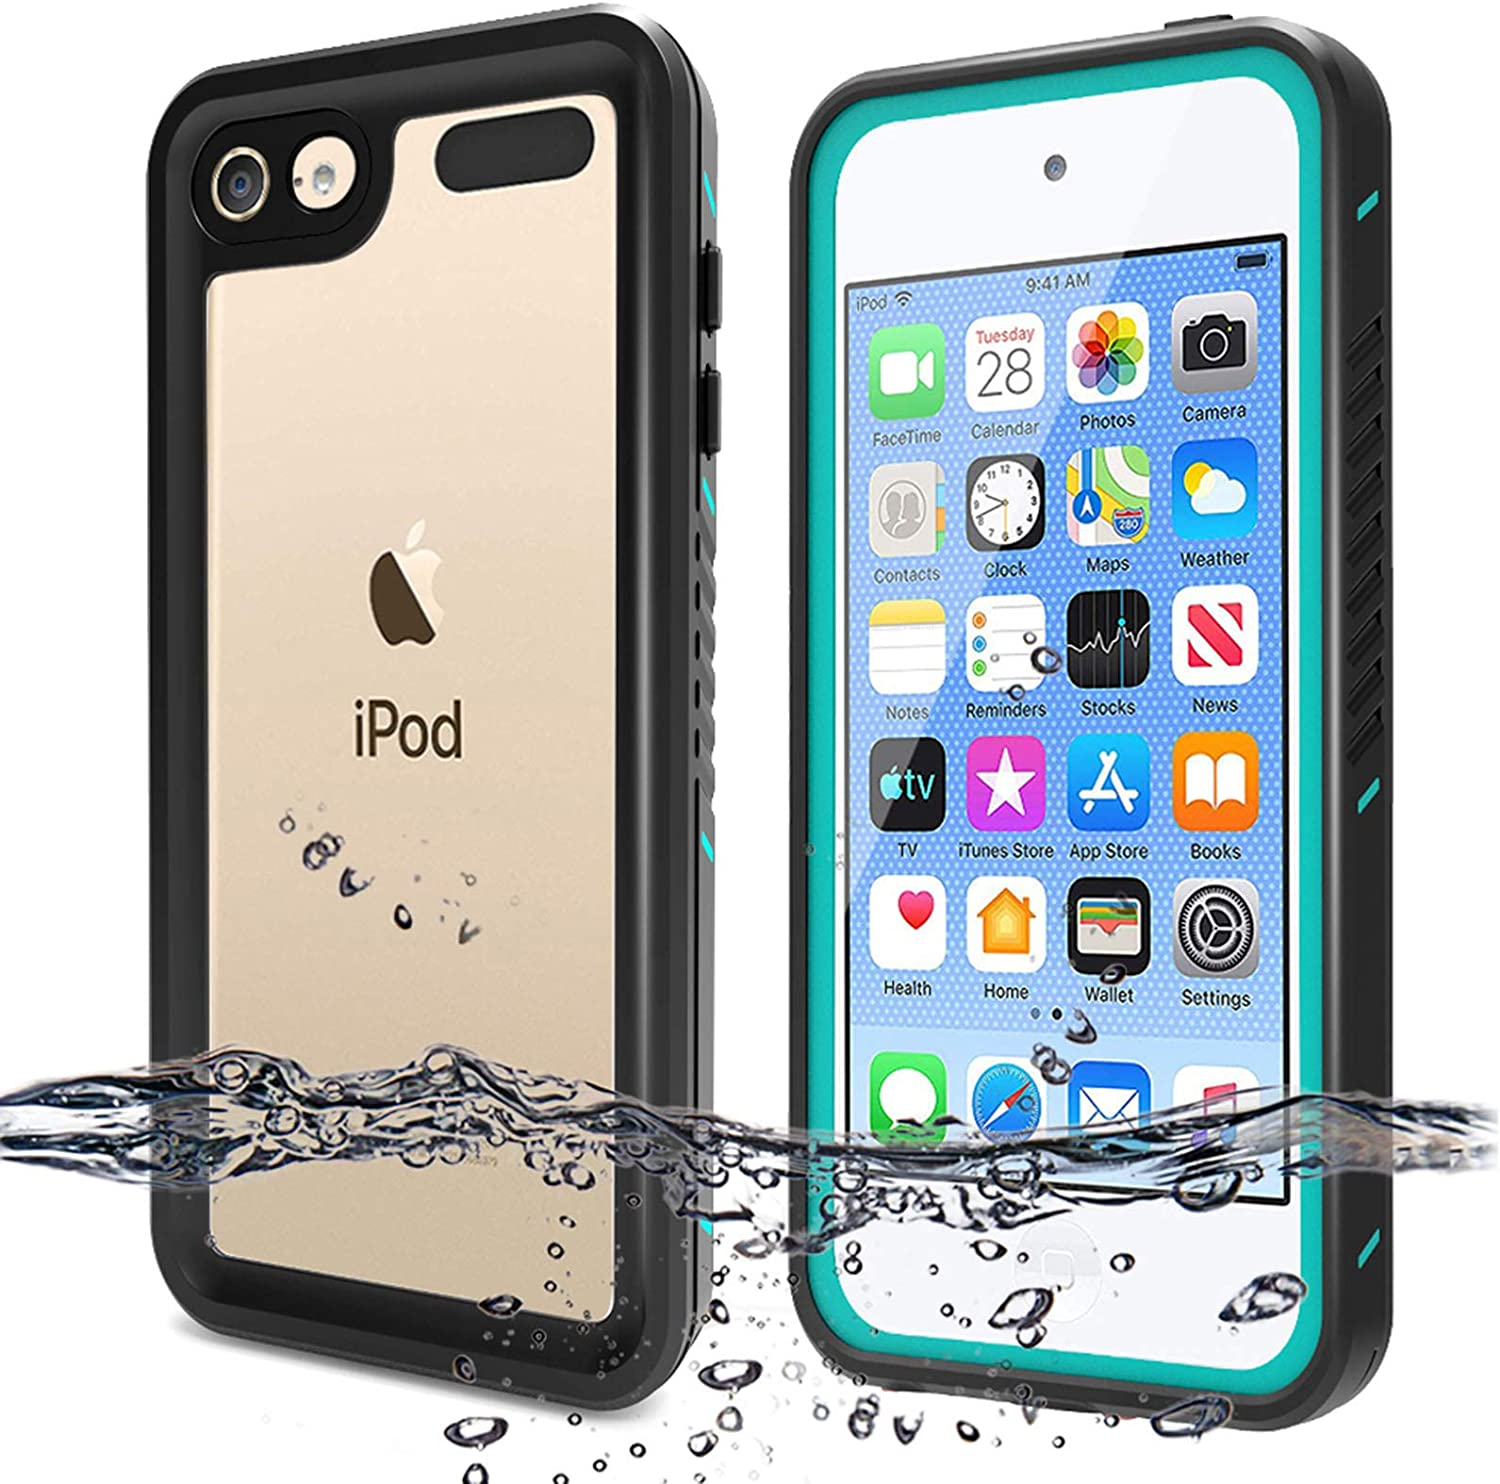 BESINPO Waterproof Case Compatible with iPod Touch 7 Case, iPod Touch 6 Touch 5 Case, Full Body Built-in Screen Protector Shockproof Dustproof Anti-Scratch Case for iPod Touch 7th/6th/5th Generation